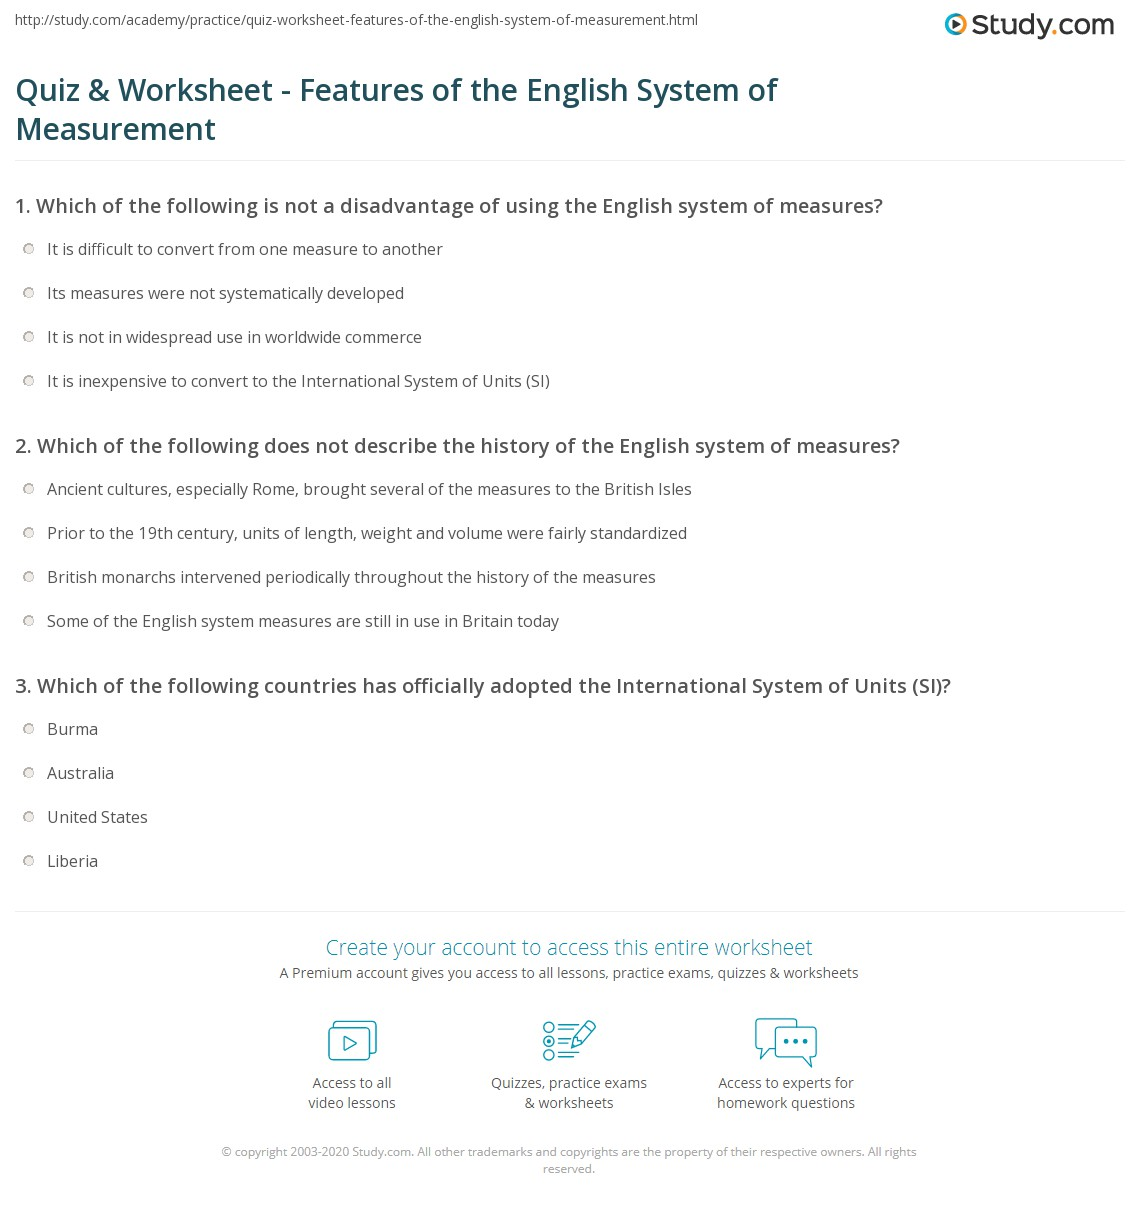 Worksheets Metric Measurement Conversion Worksheet Answers worksheet measurement conversion quiz wosenly free printables metric answers worksheets laurenpsyk and of meters centimet